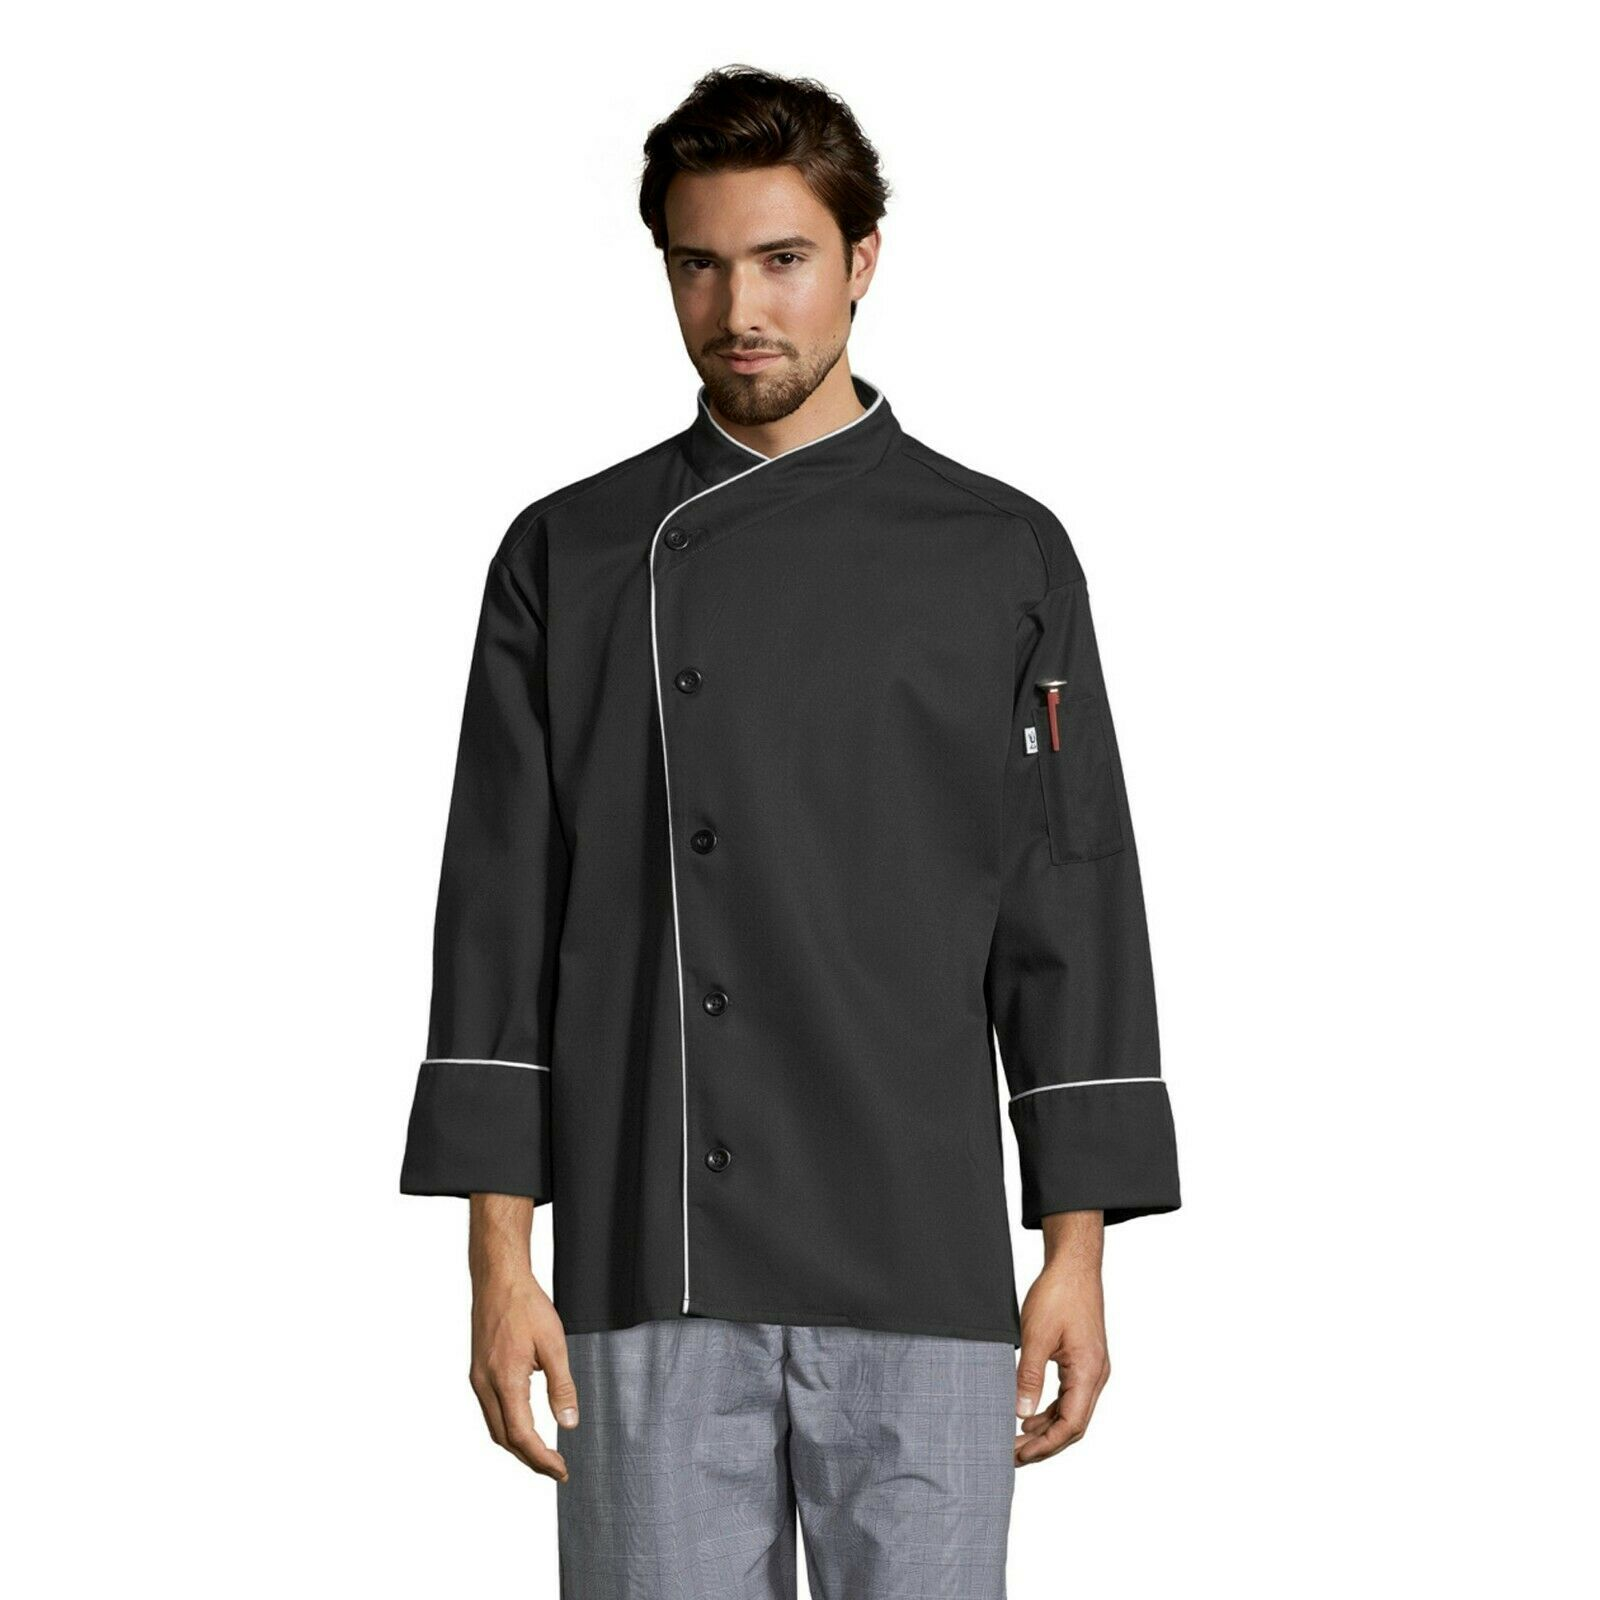 Uncommon Threads Chef Jacket PANAMA 0491 White with Black Piping size X-Large